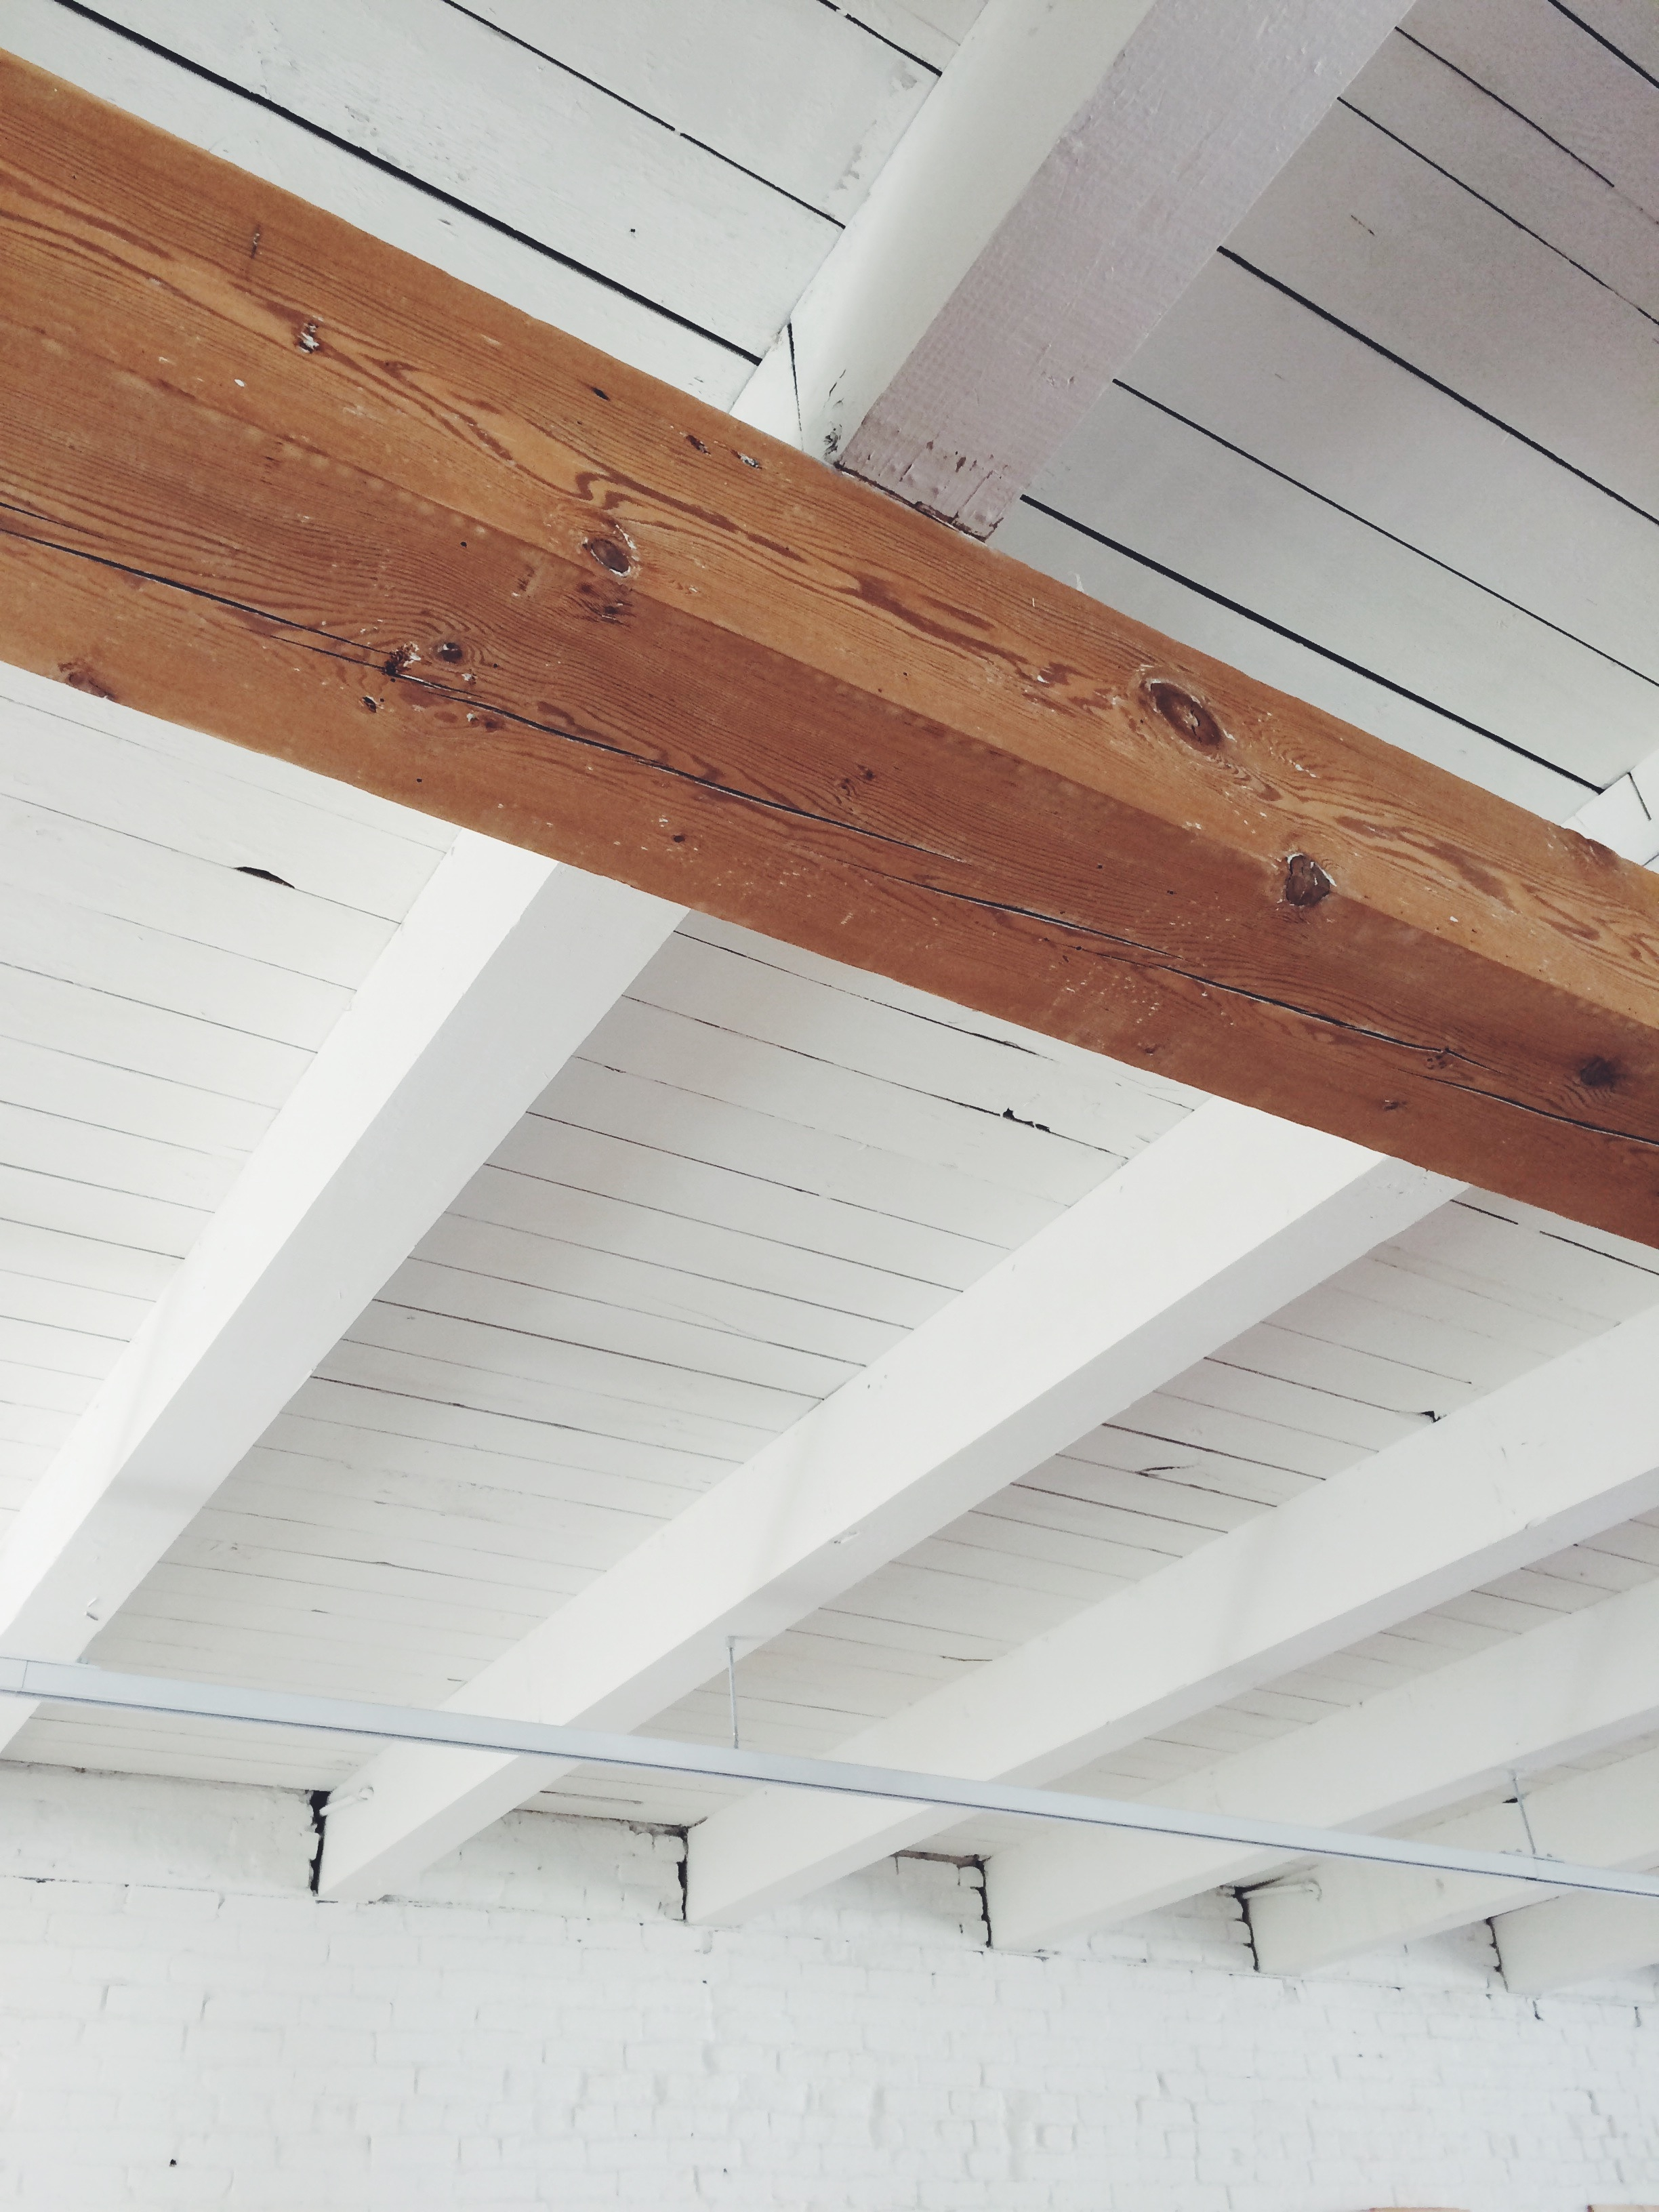 Existing columns and girders were restored to their natural color, while other structure was painted white.